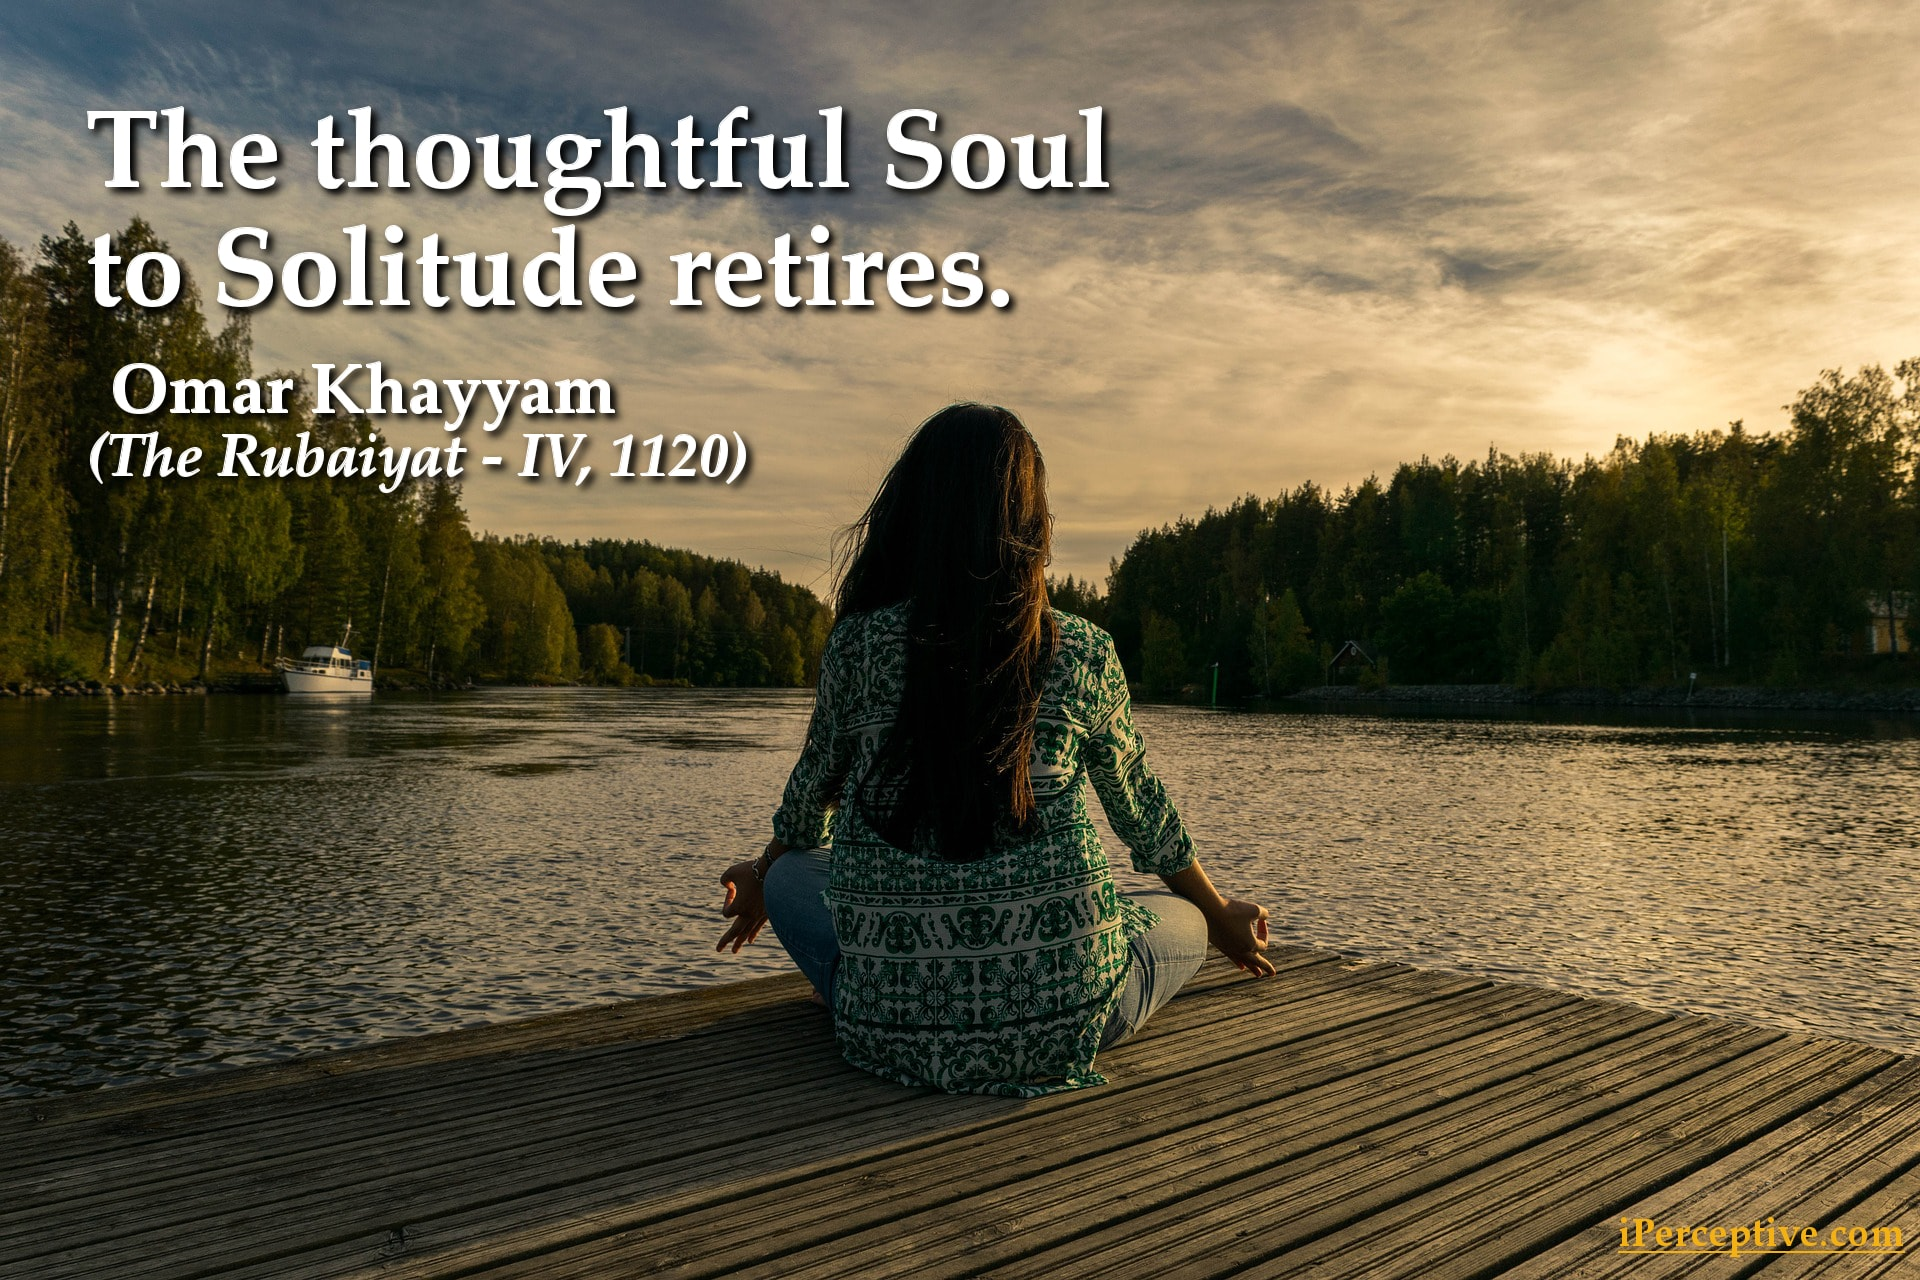 Omar Khayyam Quote: The thoughtful soul to solitude retires...